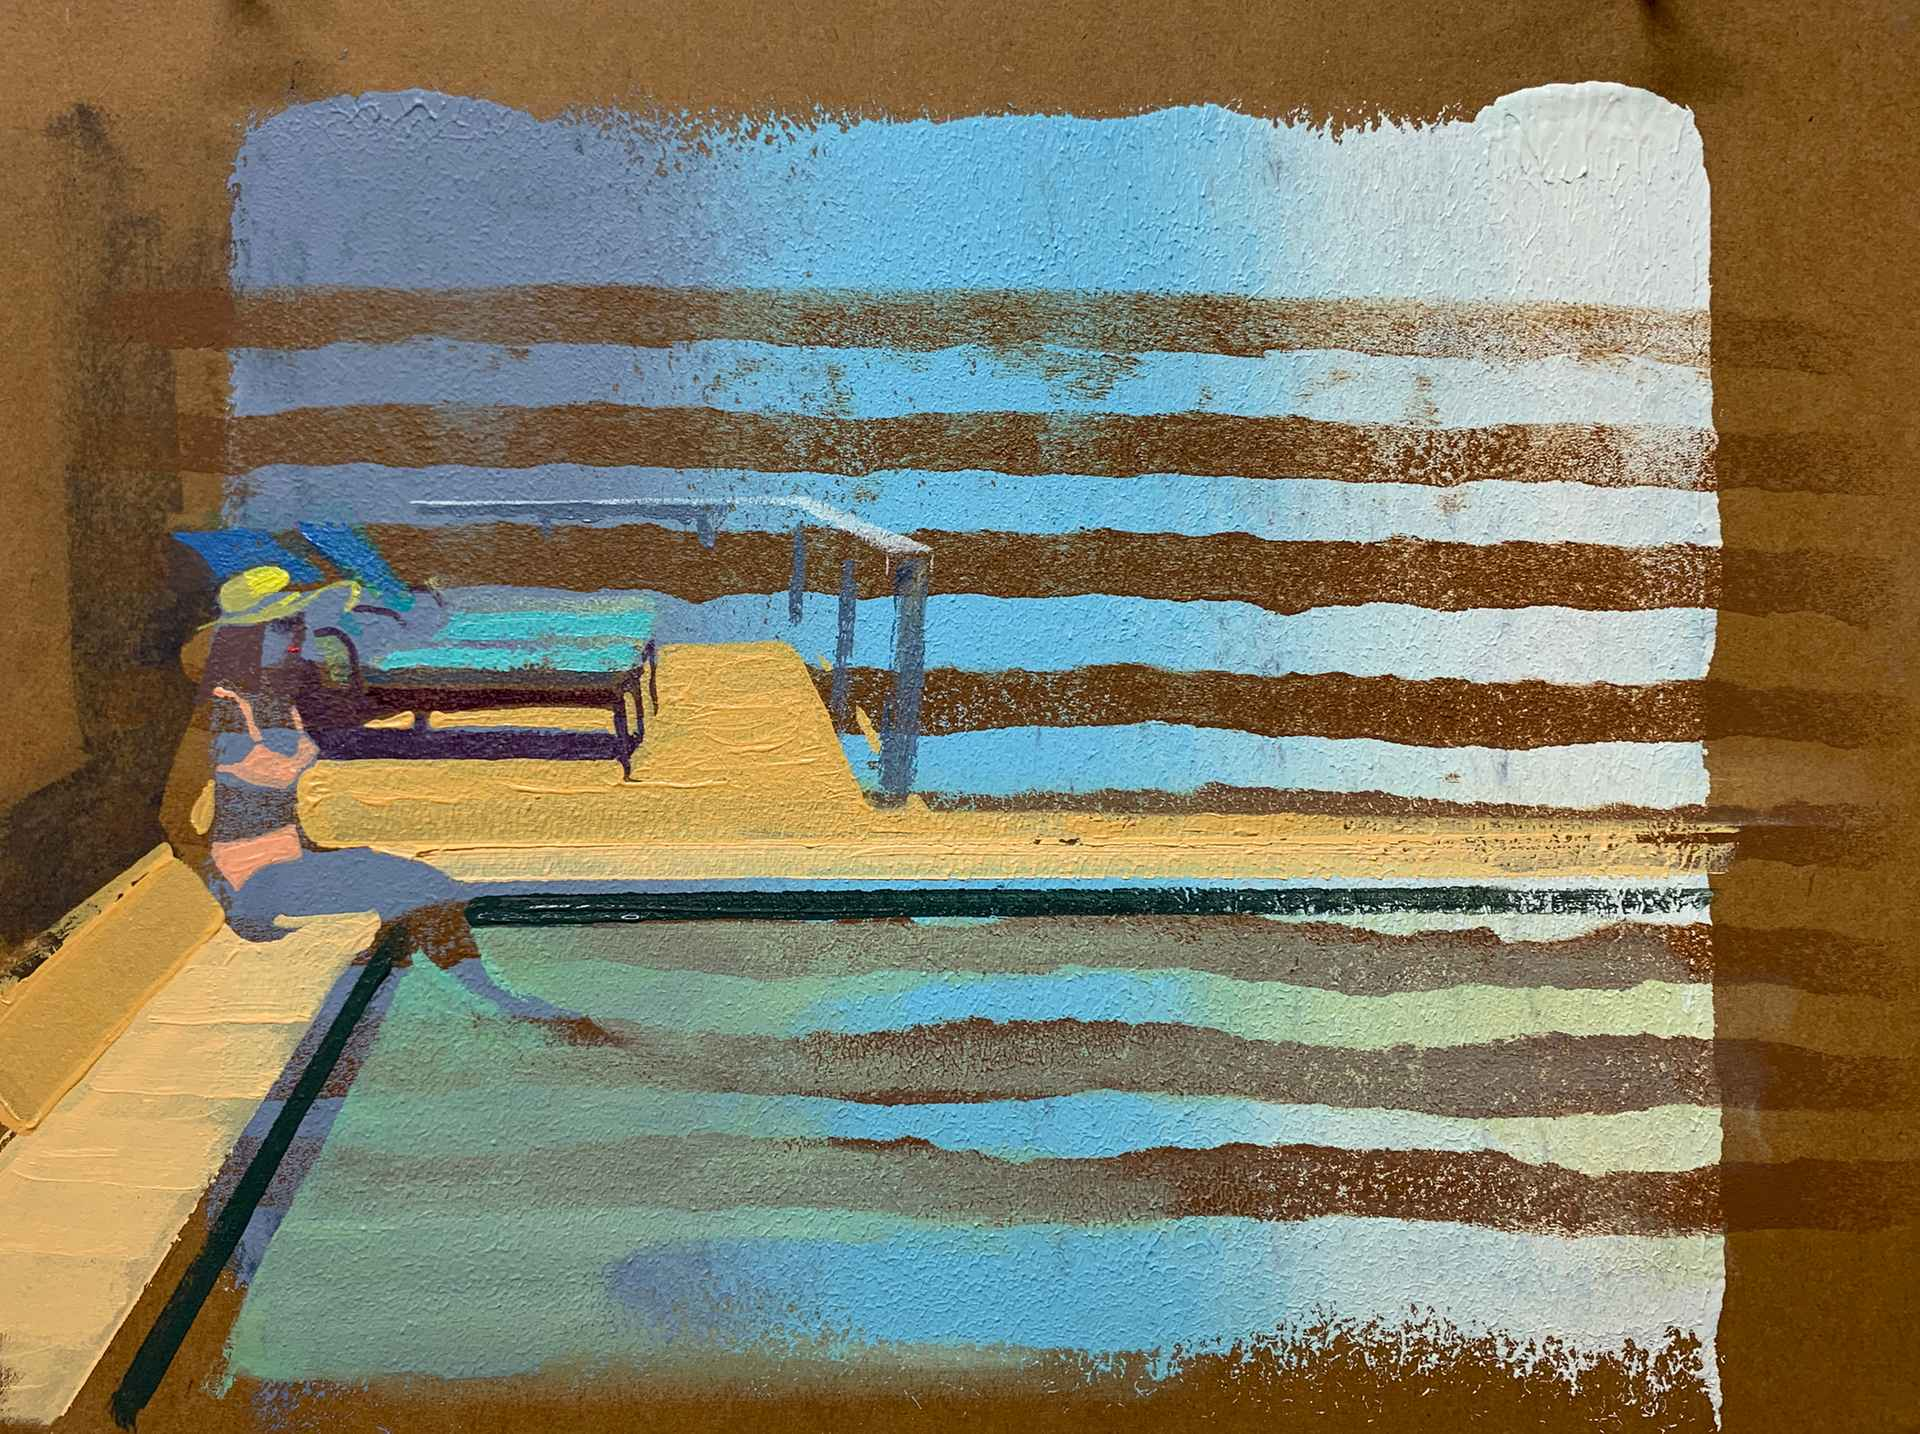 Poolside by Andrew Fish